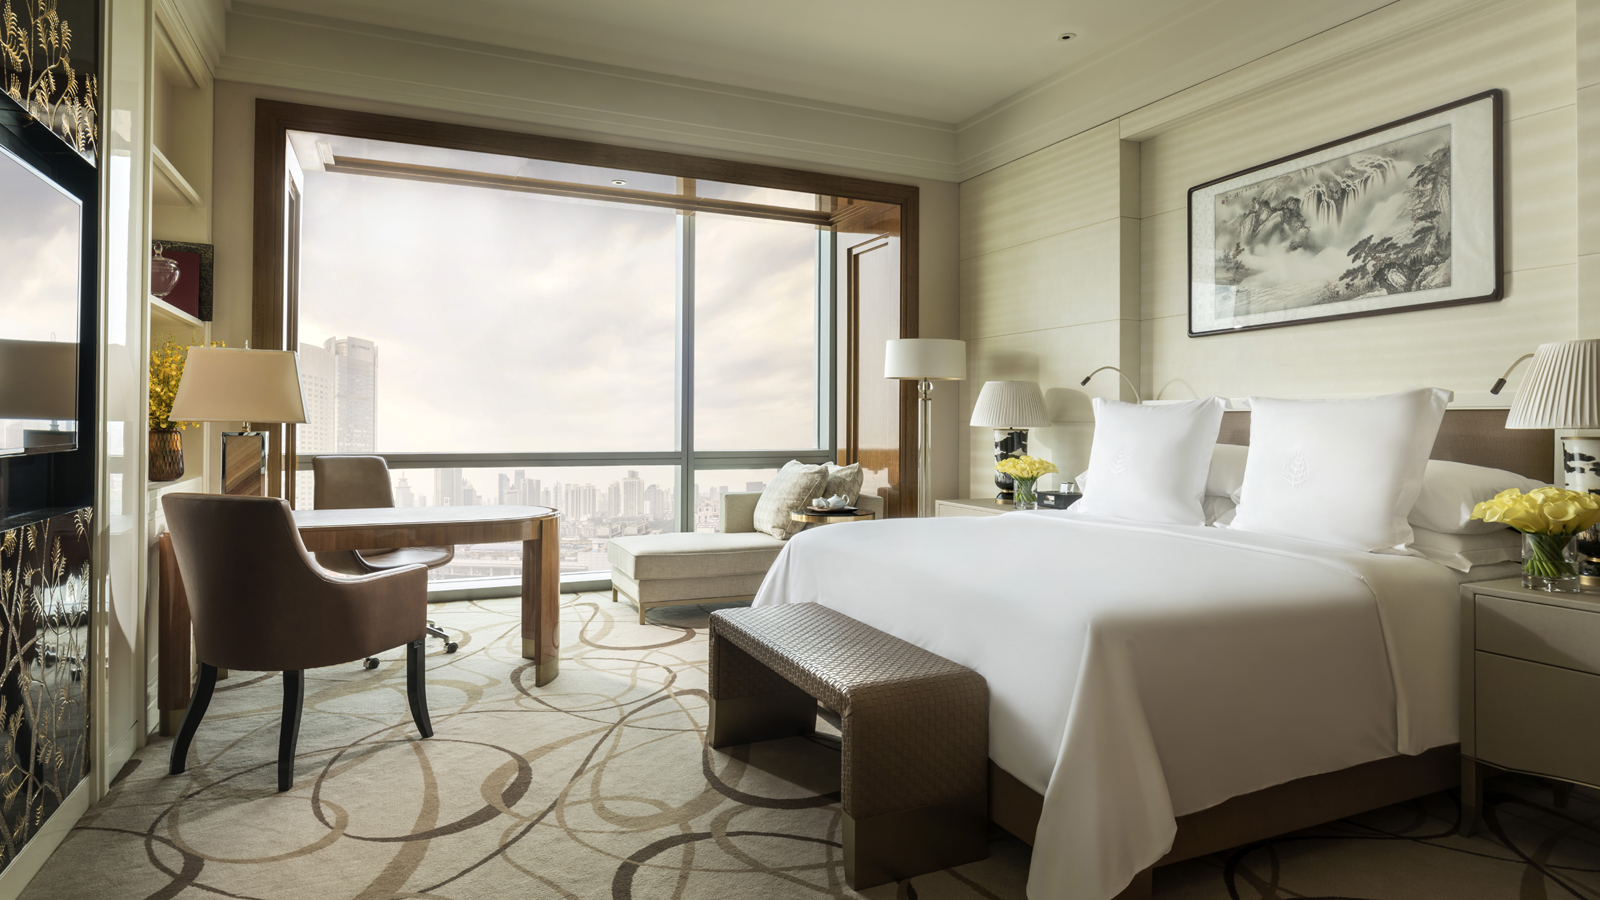 service quality in four seasons hotel 104 reviews of four seasons hotel atlanta swanky i feel like i need to dress up, just to check in or use the gym  and efficiency of service i had imagined the .